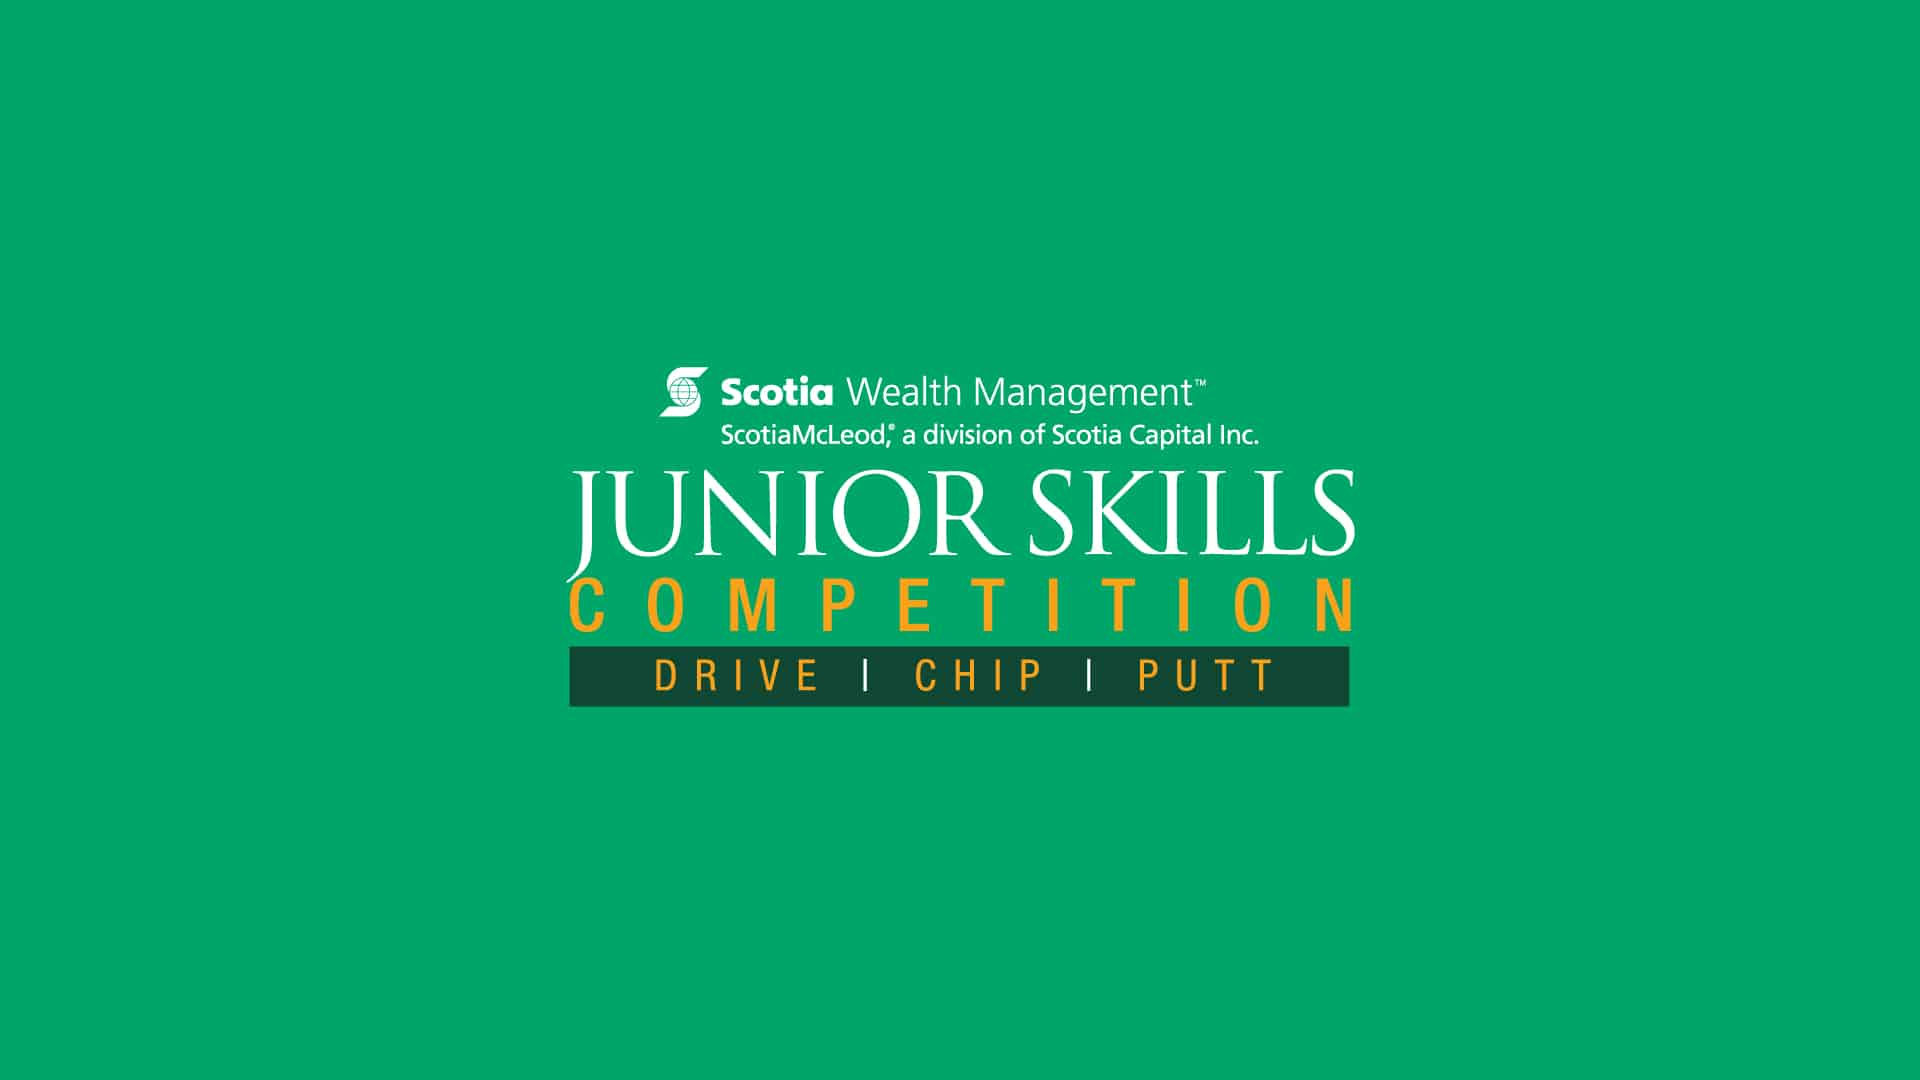 ScotiaMcLeod Junior Skills Competition Drive Chip and Putt